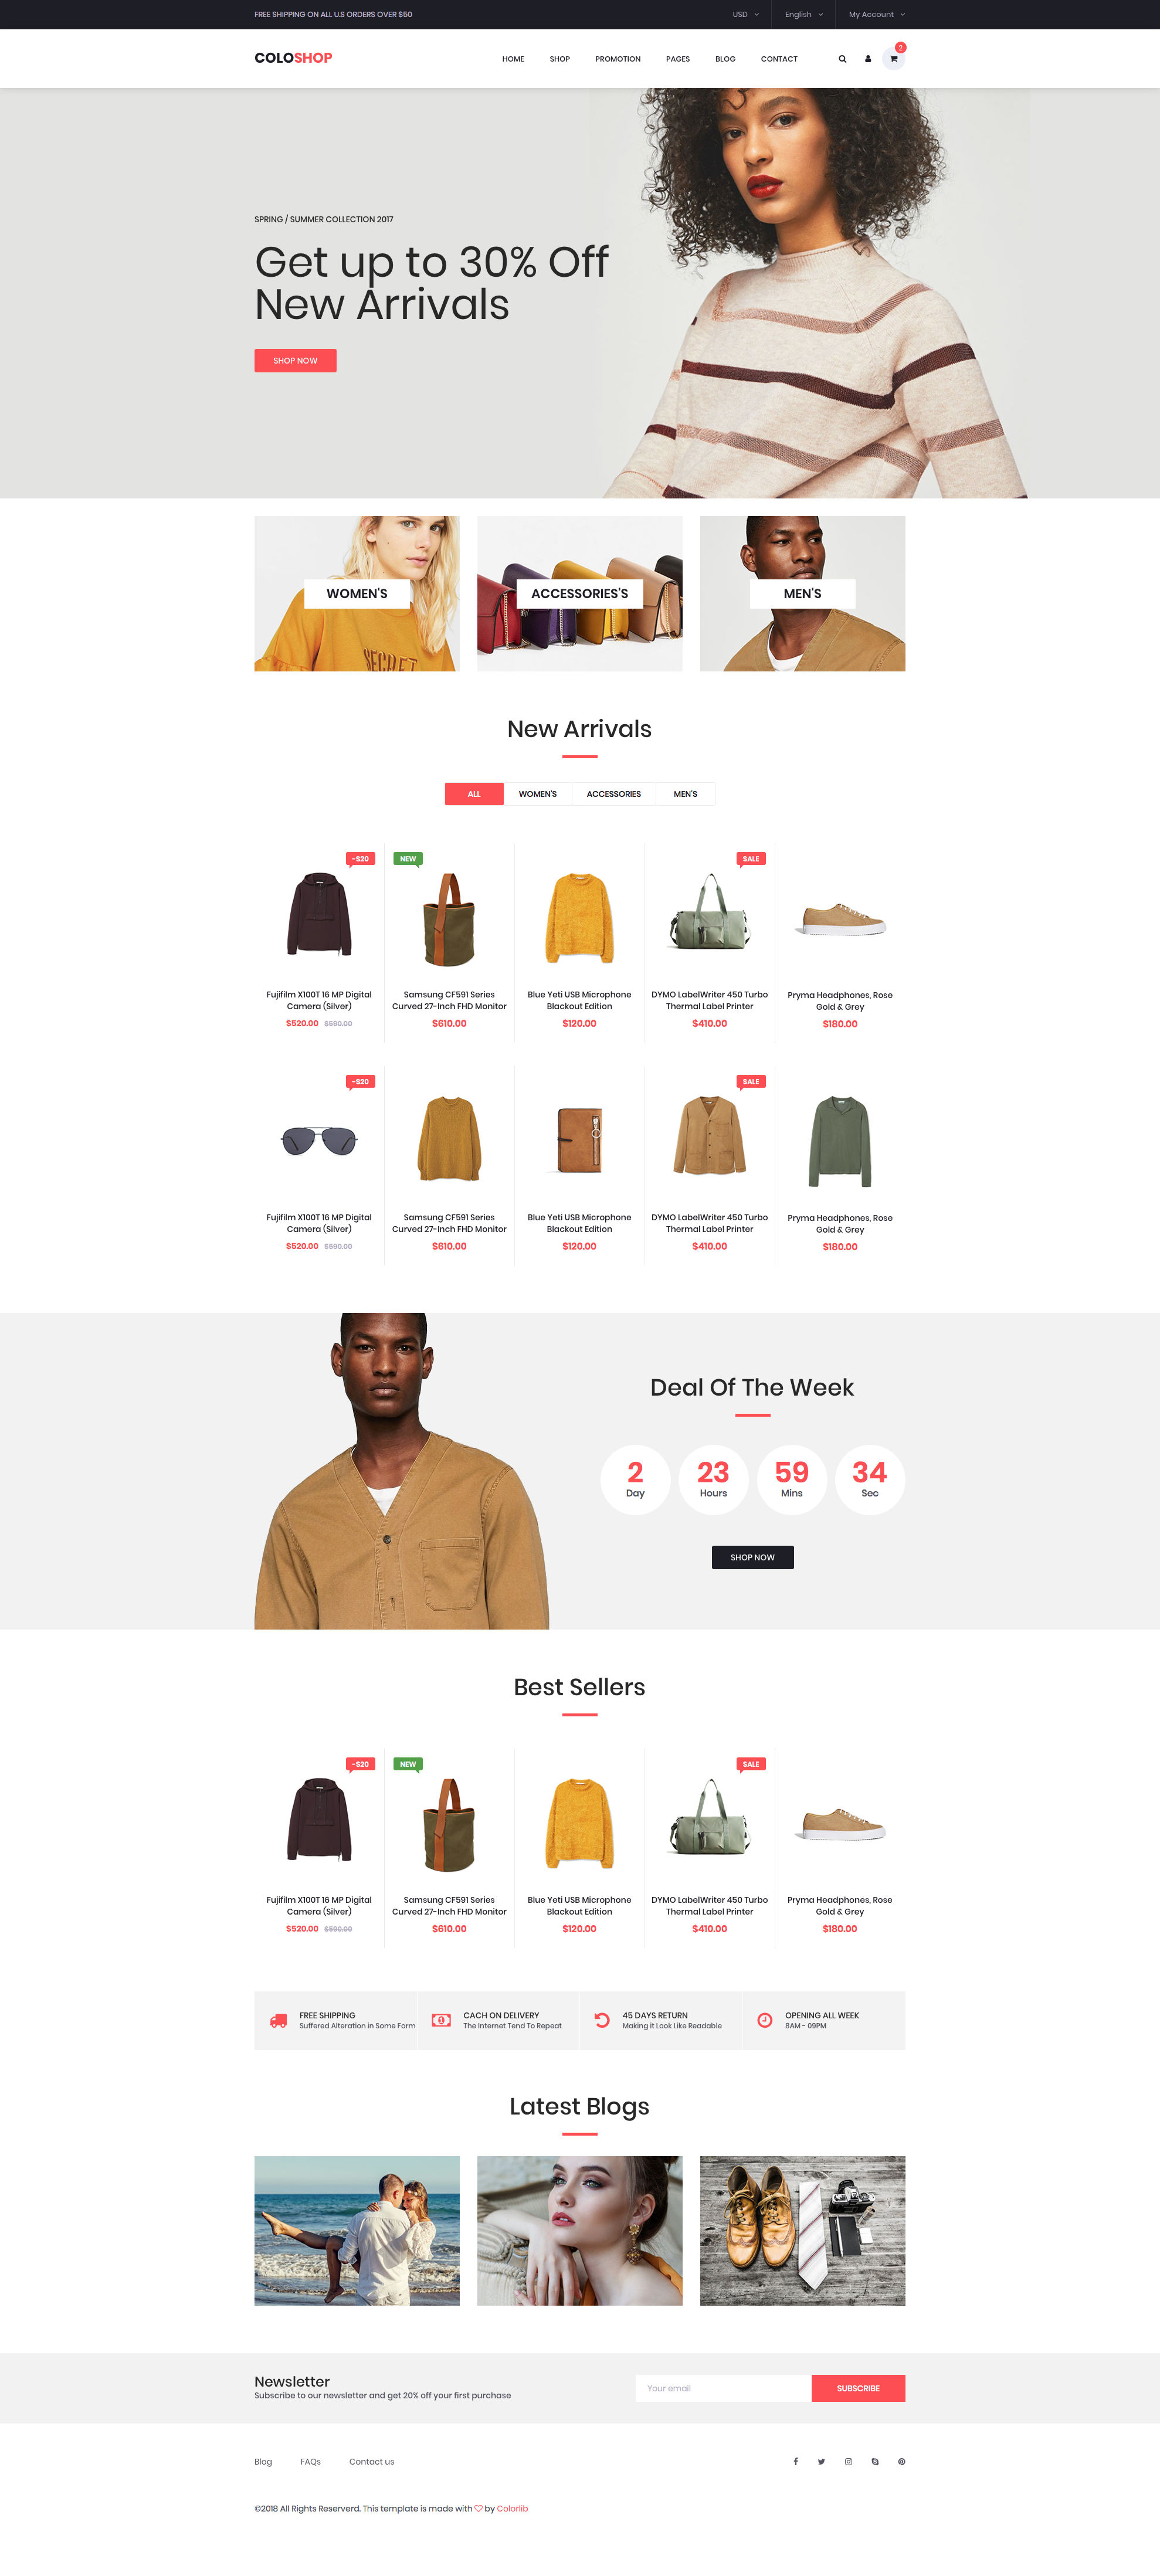 ColoShop is a free HTML Bootstrap eCommerce website template. This free HTML template has a clean and elegant design, it is fully responsive, retina ready and comes with the popular Bootstrap CSS Grid System.